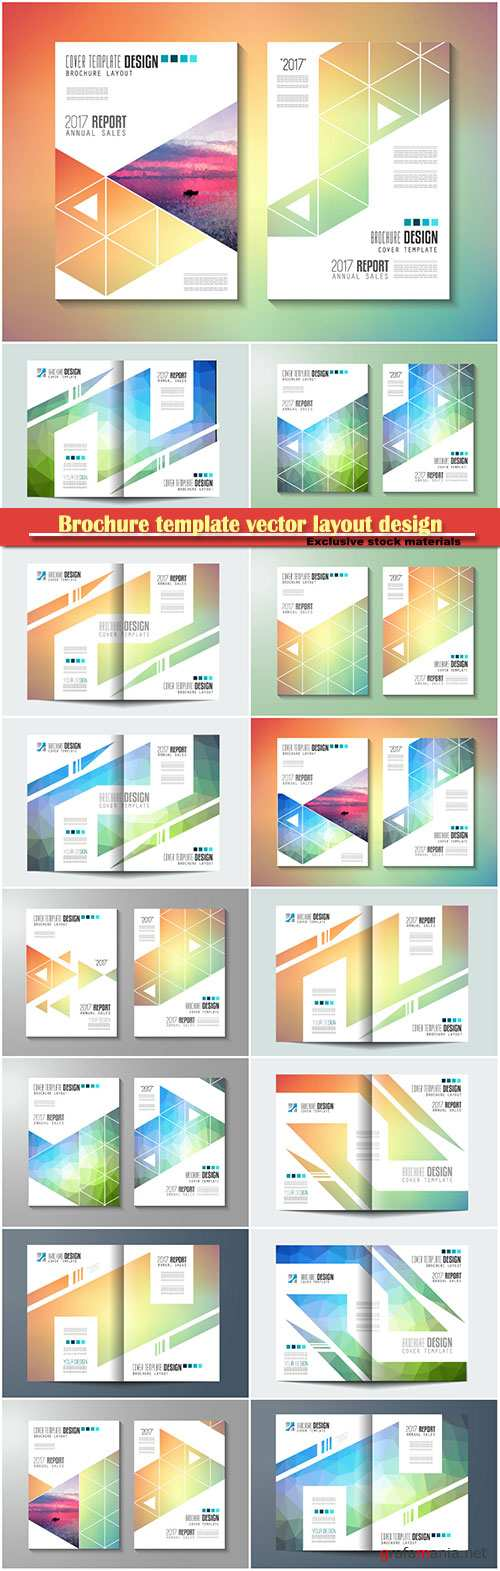 Brochure template vector layout design, corporate business annual report, magazine, flyer mockup # 128